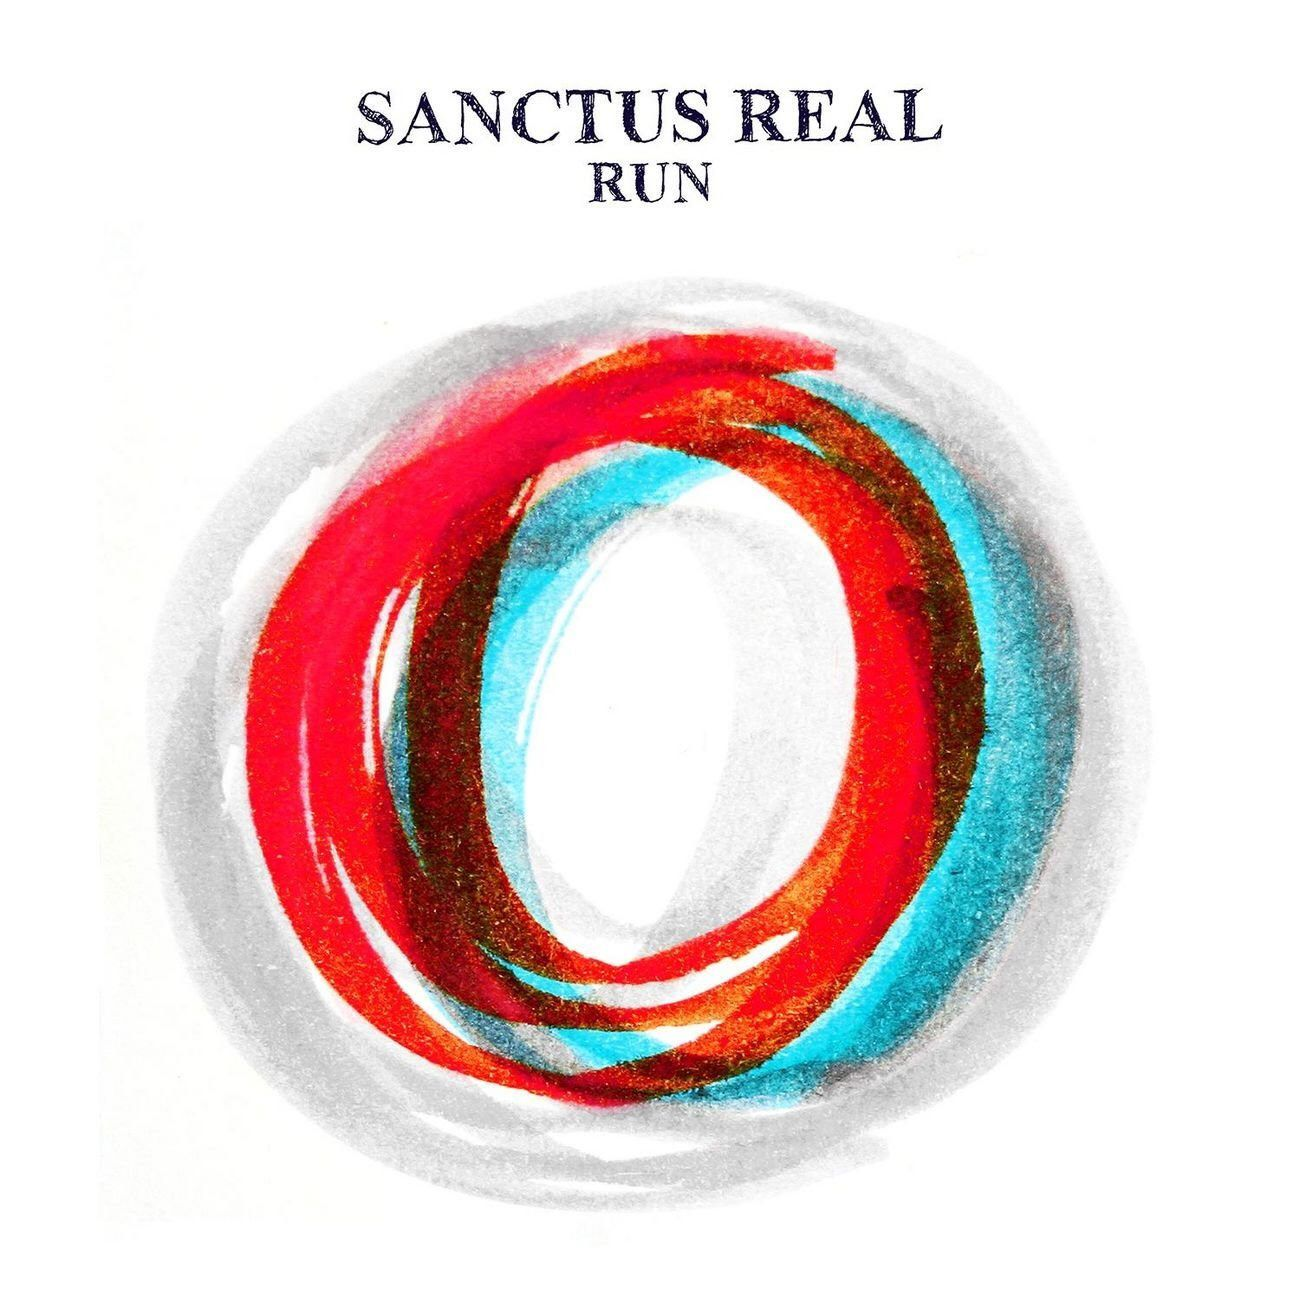 I'm listening to Promises by Sanctus Real in my Air1Radio